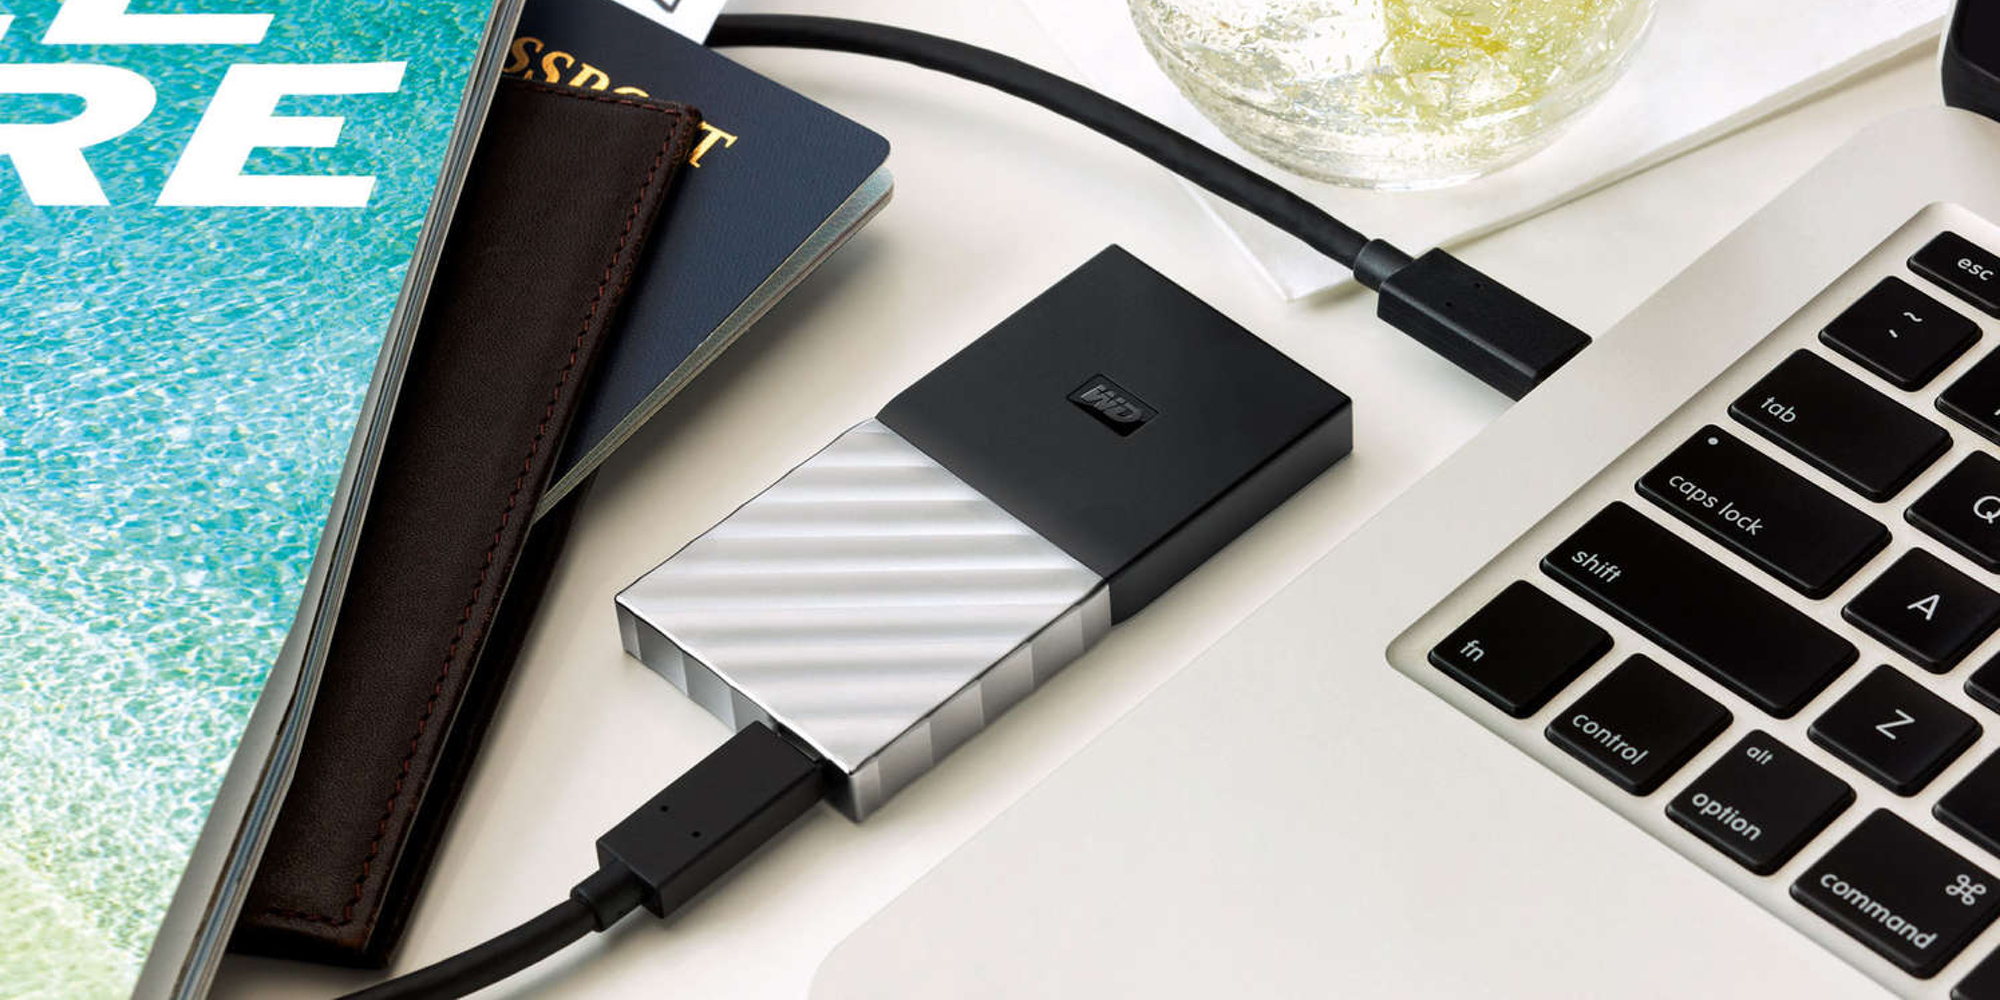 Add 512GB of portable USB-C storage to your Mac w/ WD's My Passport SSD for $90 (Reg. up to $135)